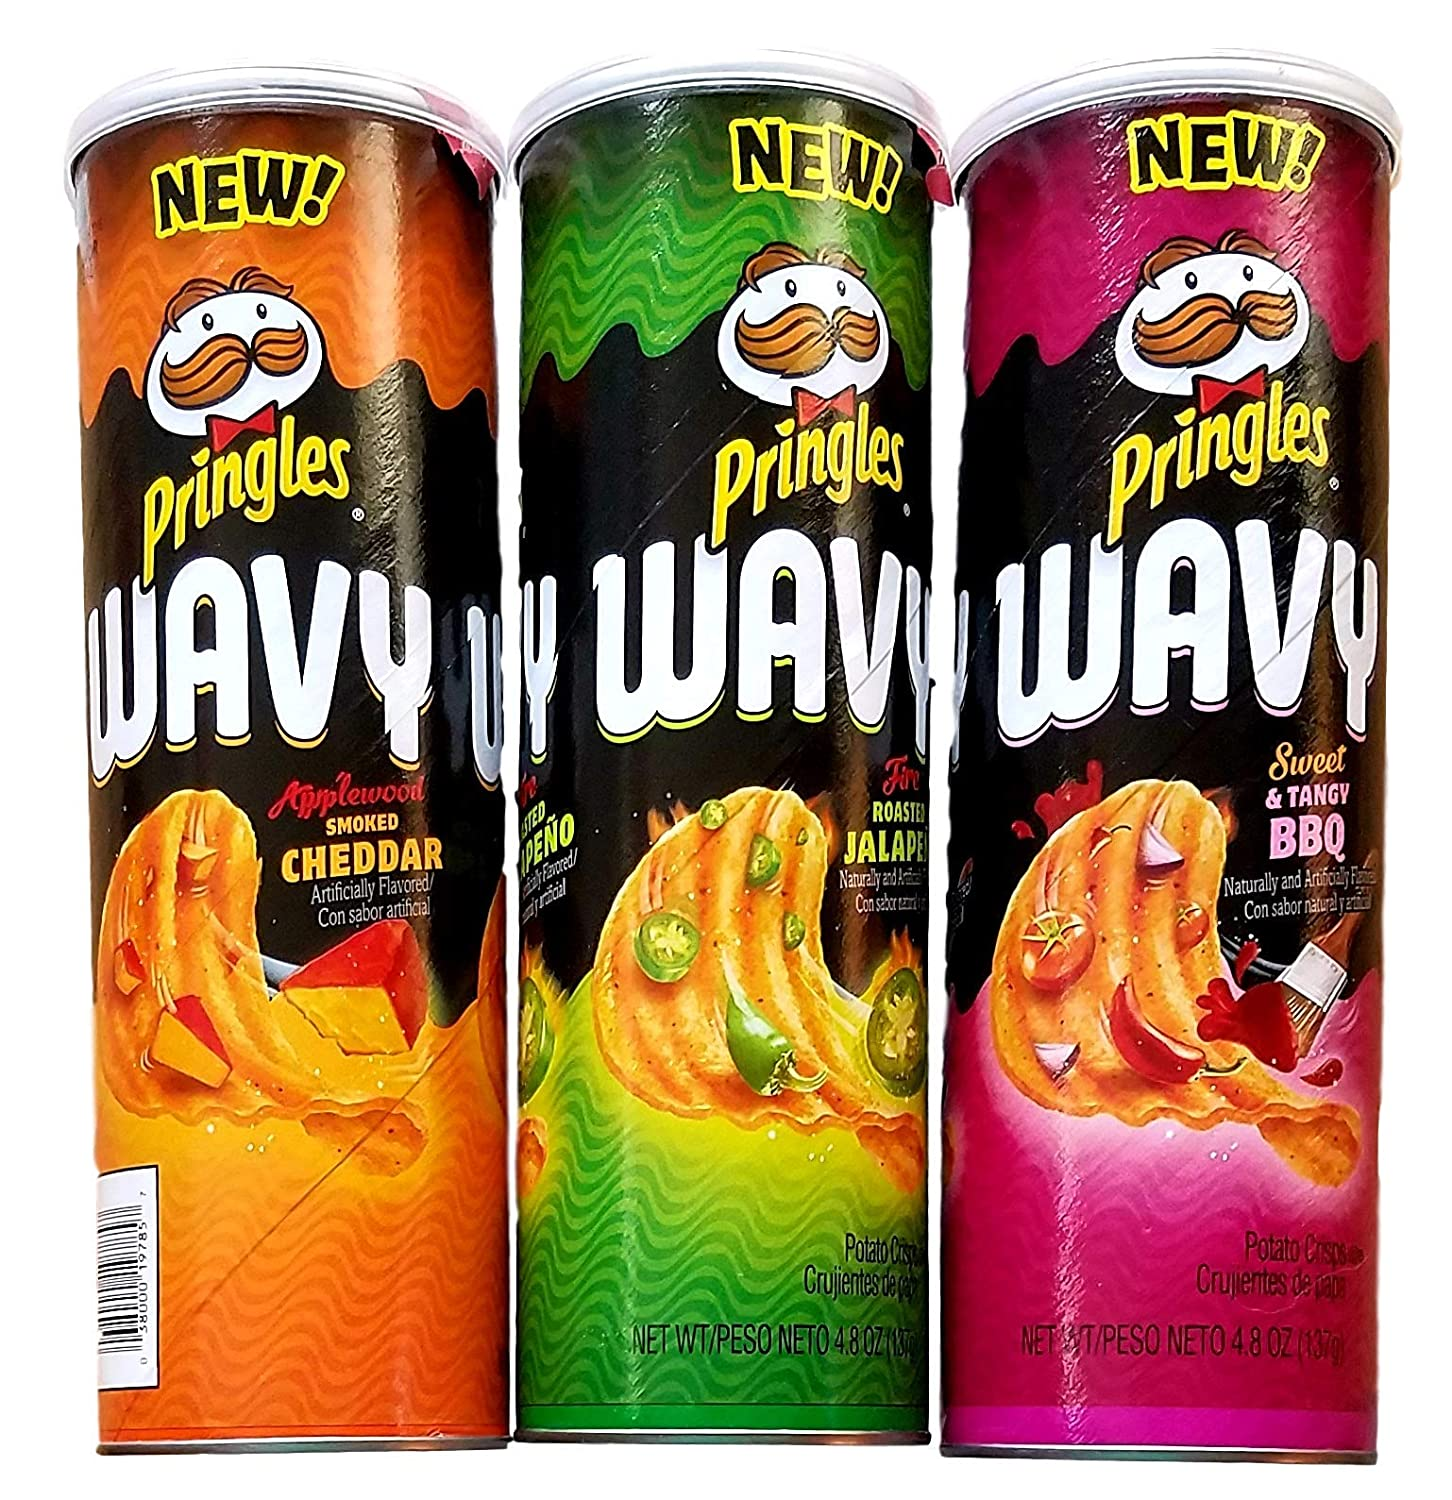 Pringles Wavy - Applewood Smoked Cheddar, Fire Roasted Jalapeno, Sweet & Tangy BBQ - 4.8 Oz Each - Variety Bundle of 3